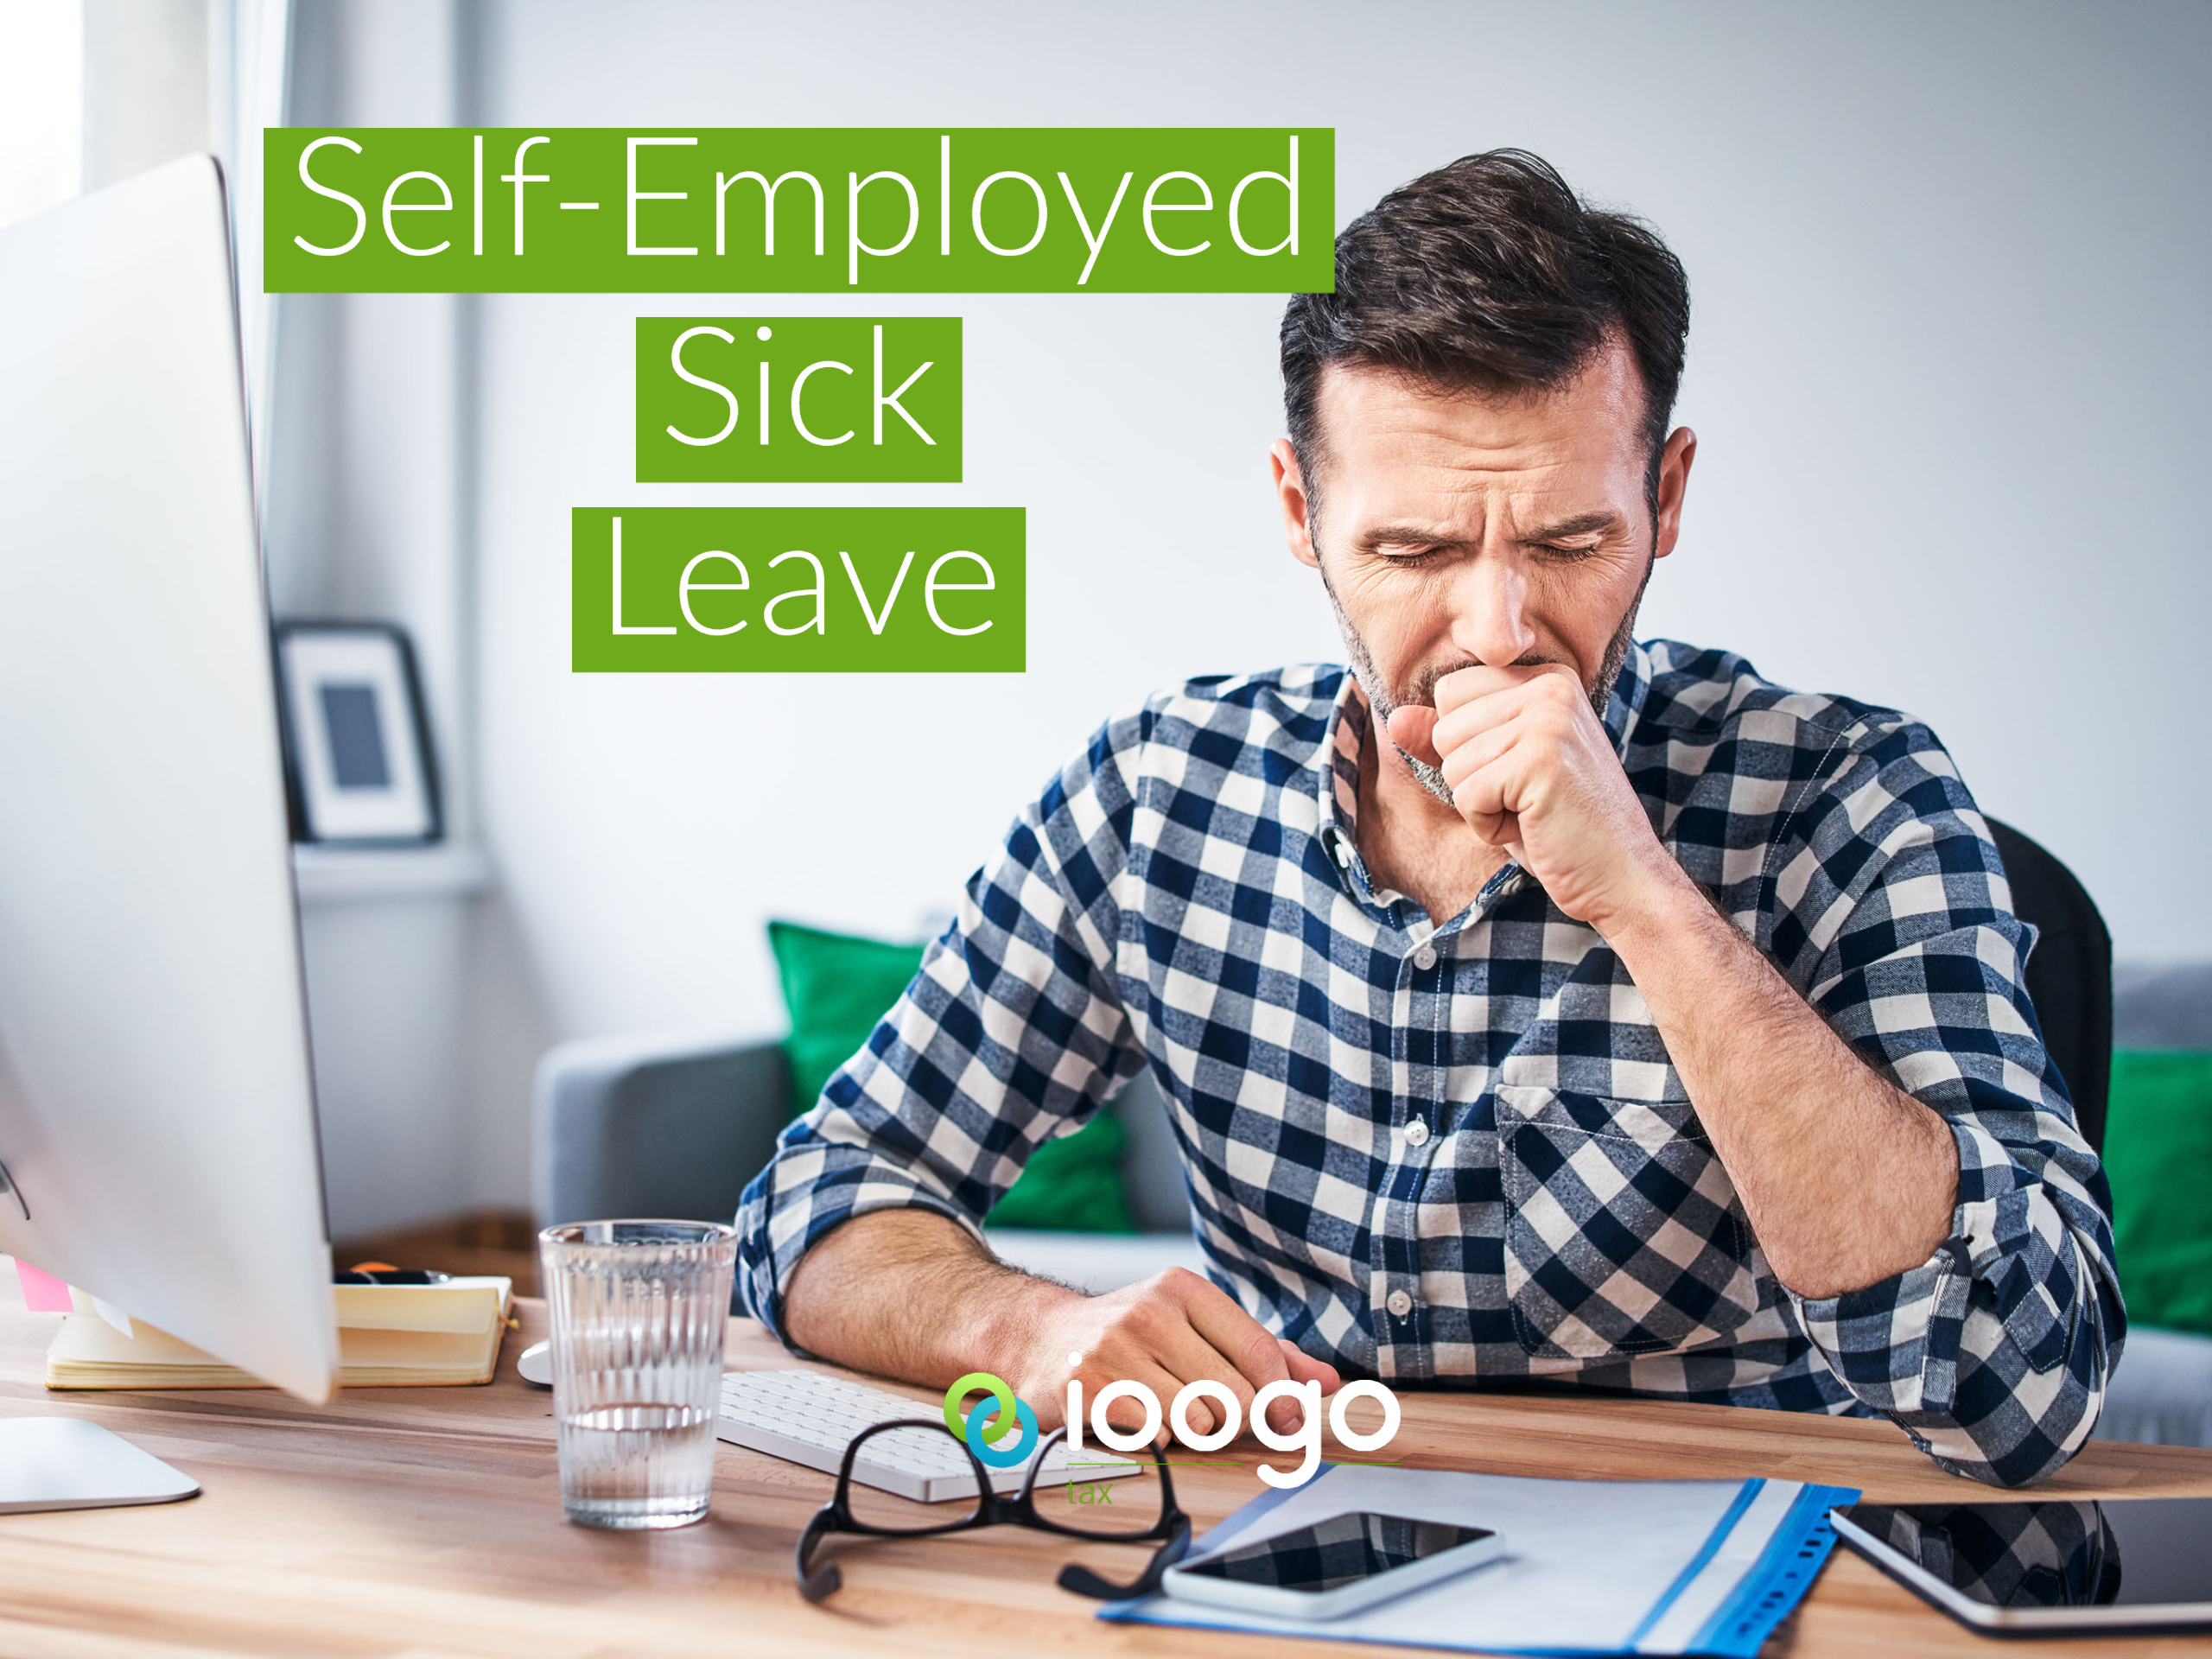 Self-Employed Sick Leave